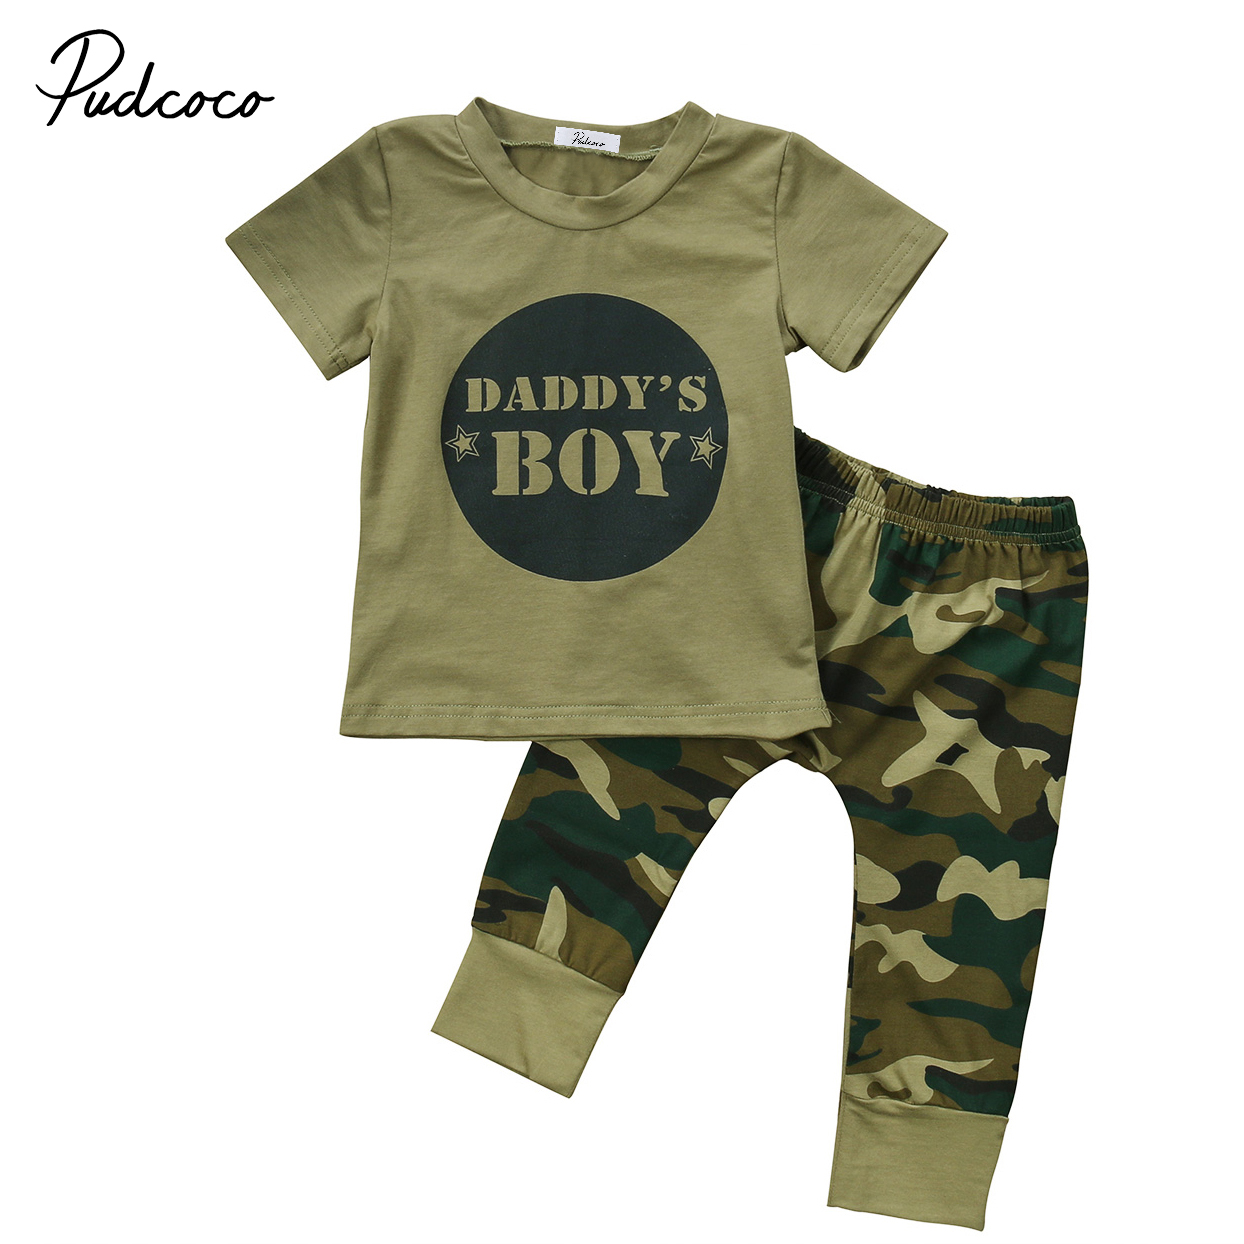 Pudcoco 2017 Newborn Infant Baby Boy Girl Camouflage T-shirt Tops Long Pants Outfits Set Clothes 0-24M